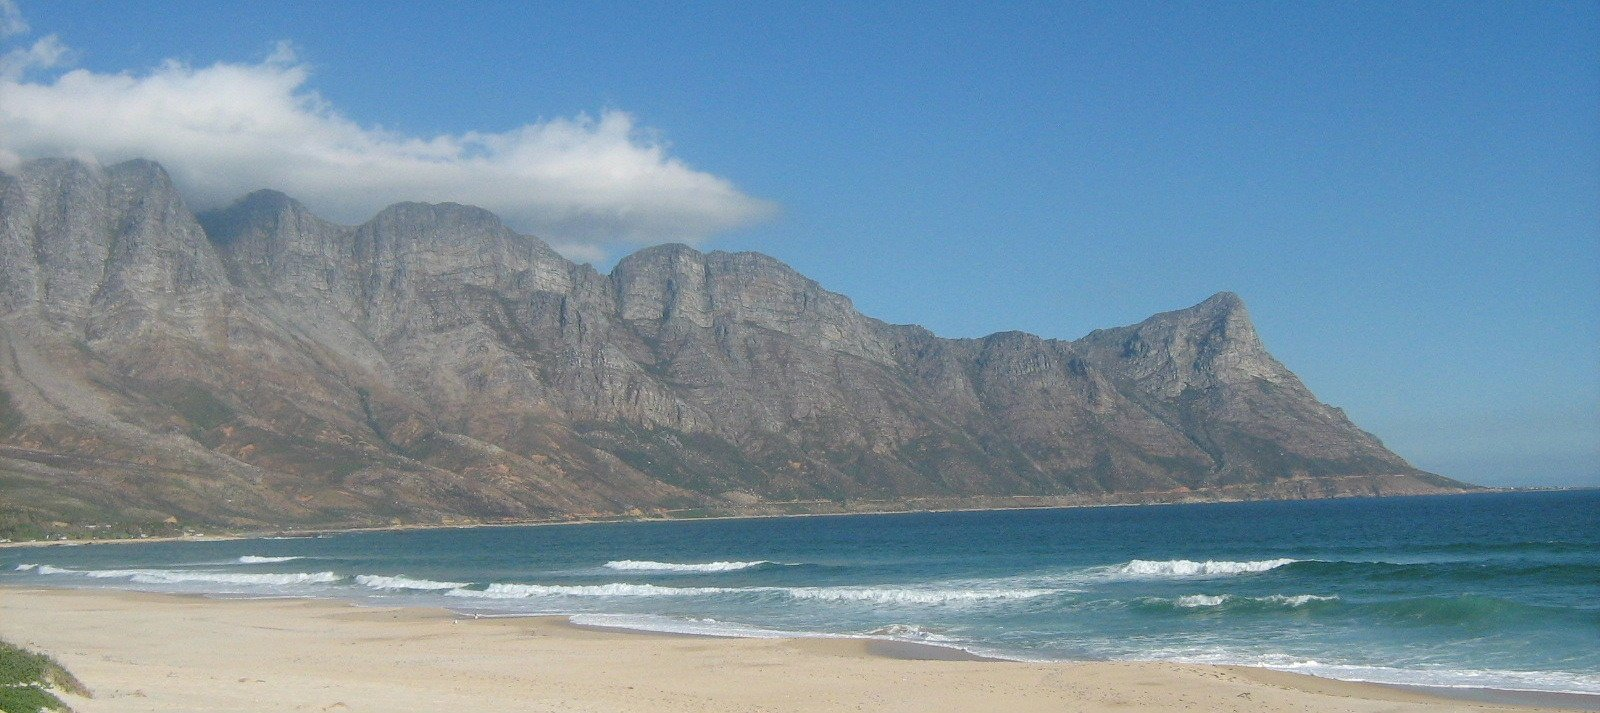 Drifter's photo of Strand